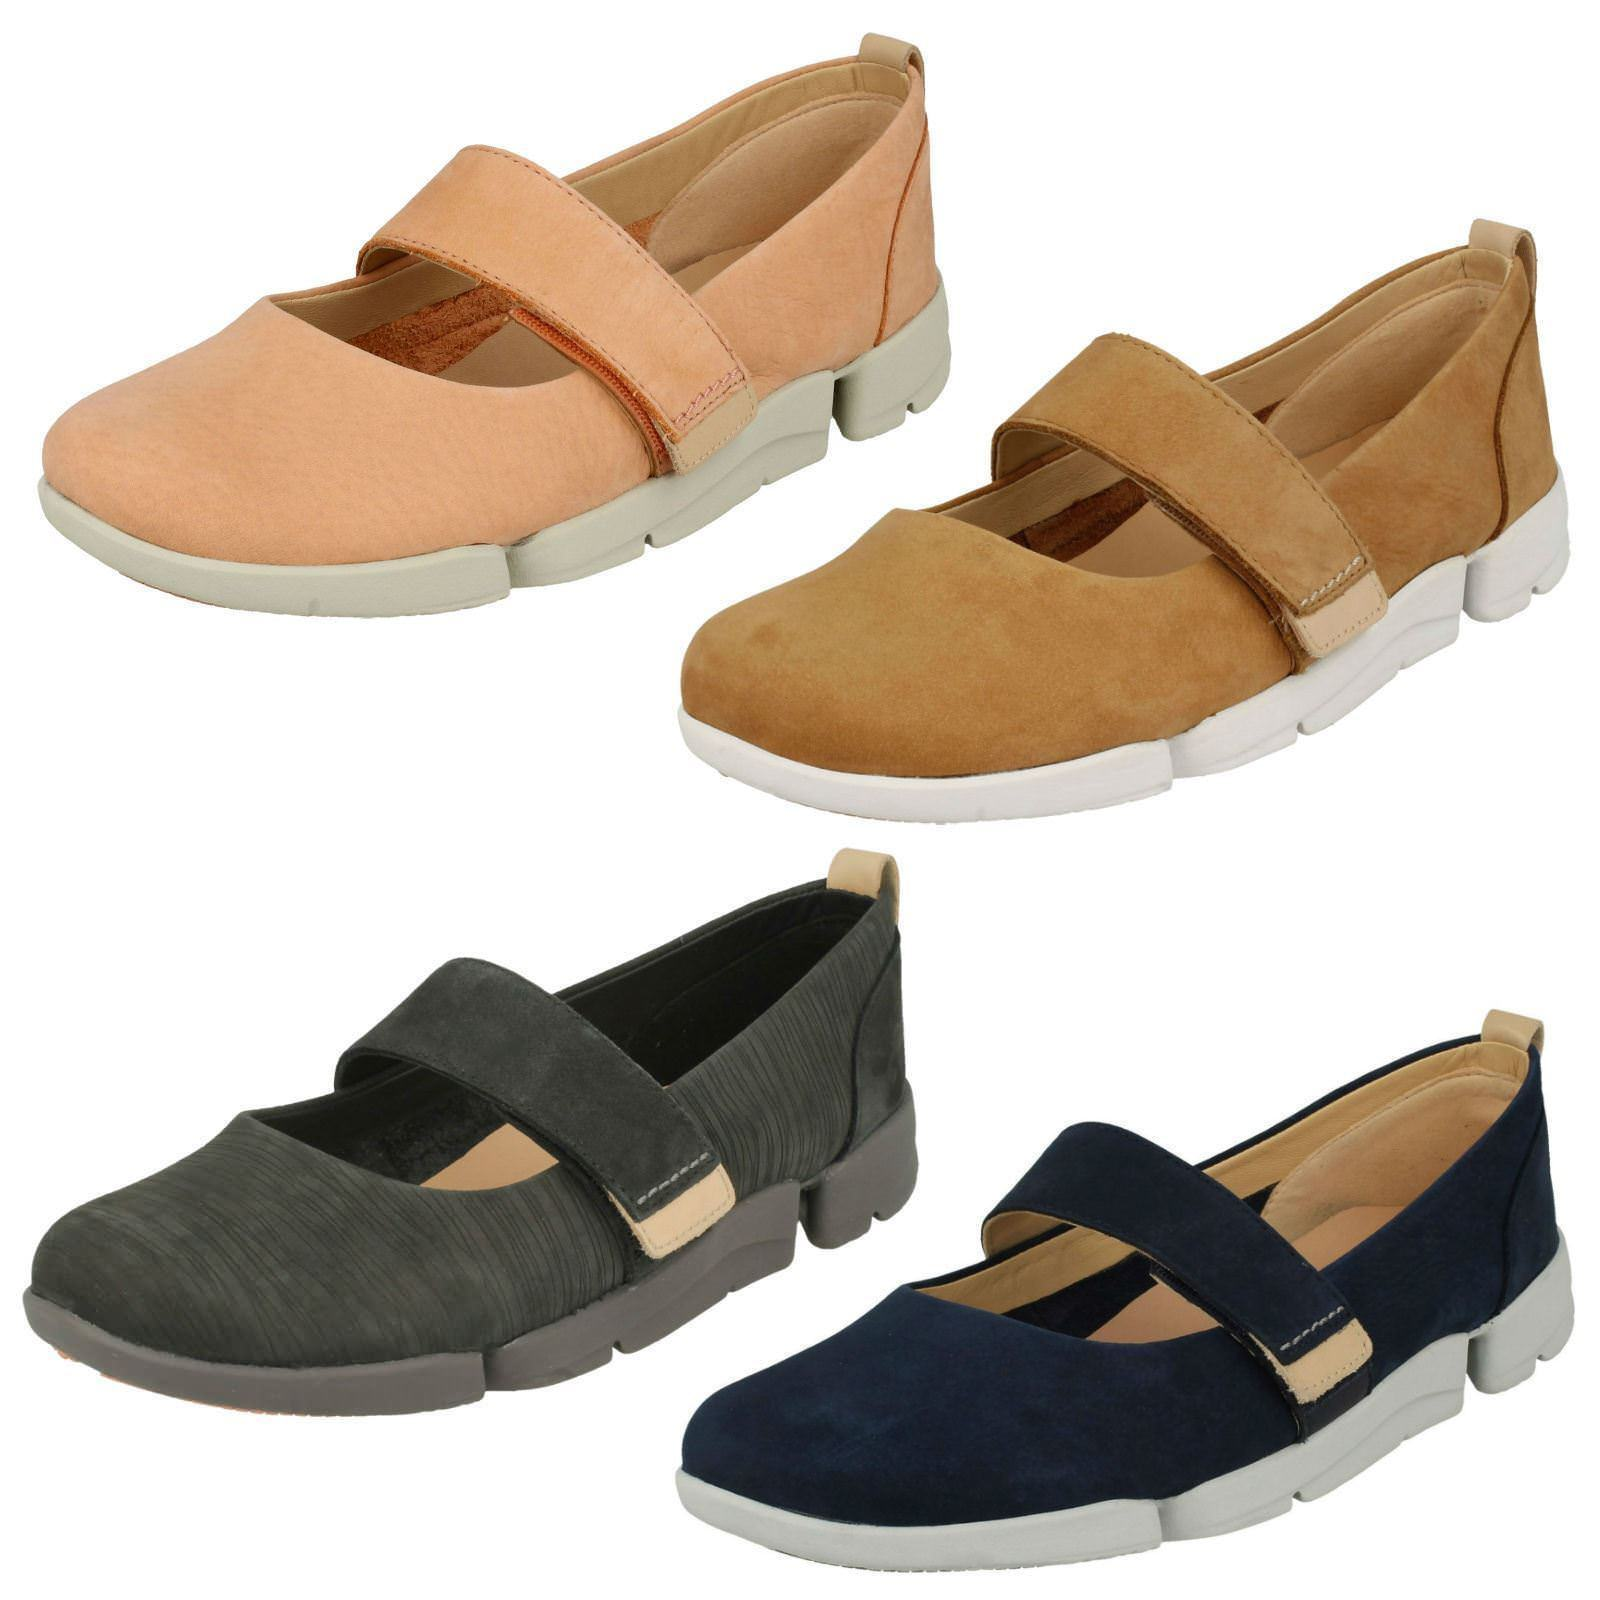 Ladies Clarks Tri Carrie Nubuck Leather Casual Flat Shoes D Fitting